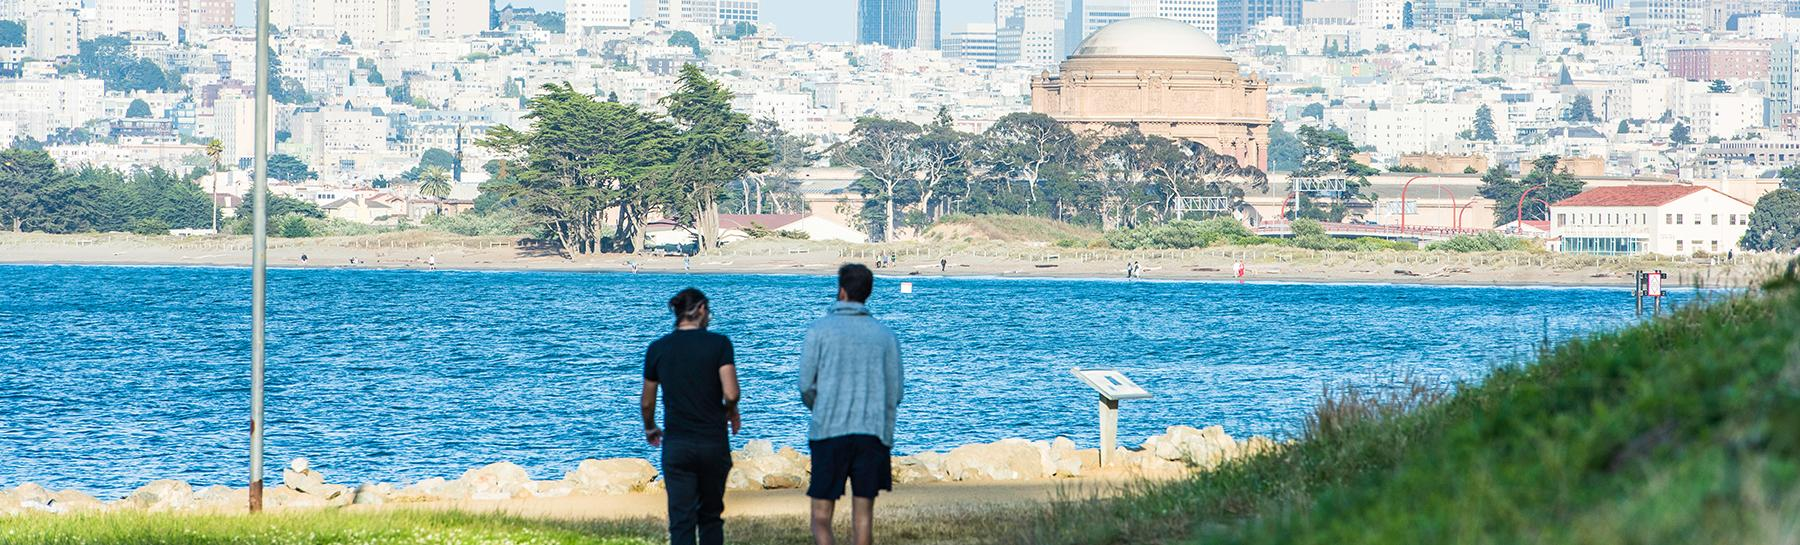 Photo of two people walking along the path that is along the San Francisco Bay near Fort Mason with a view of the City skyline ahead of them.